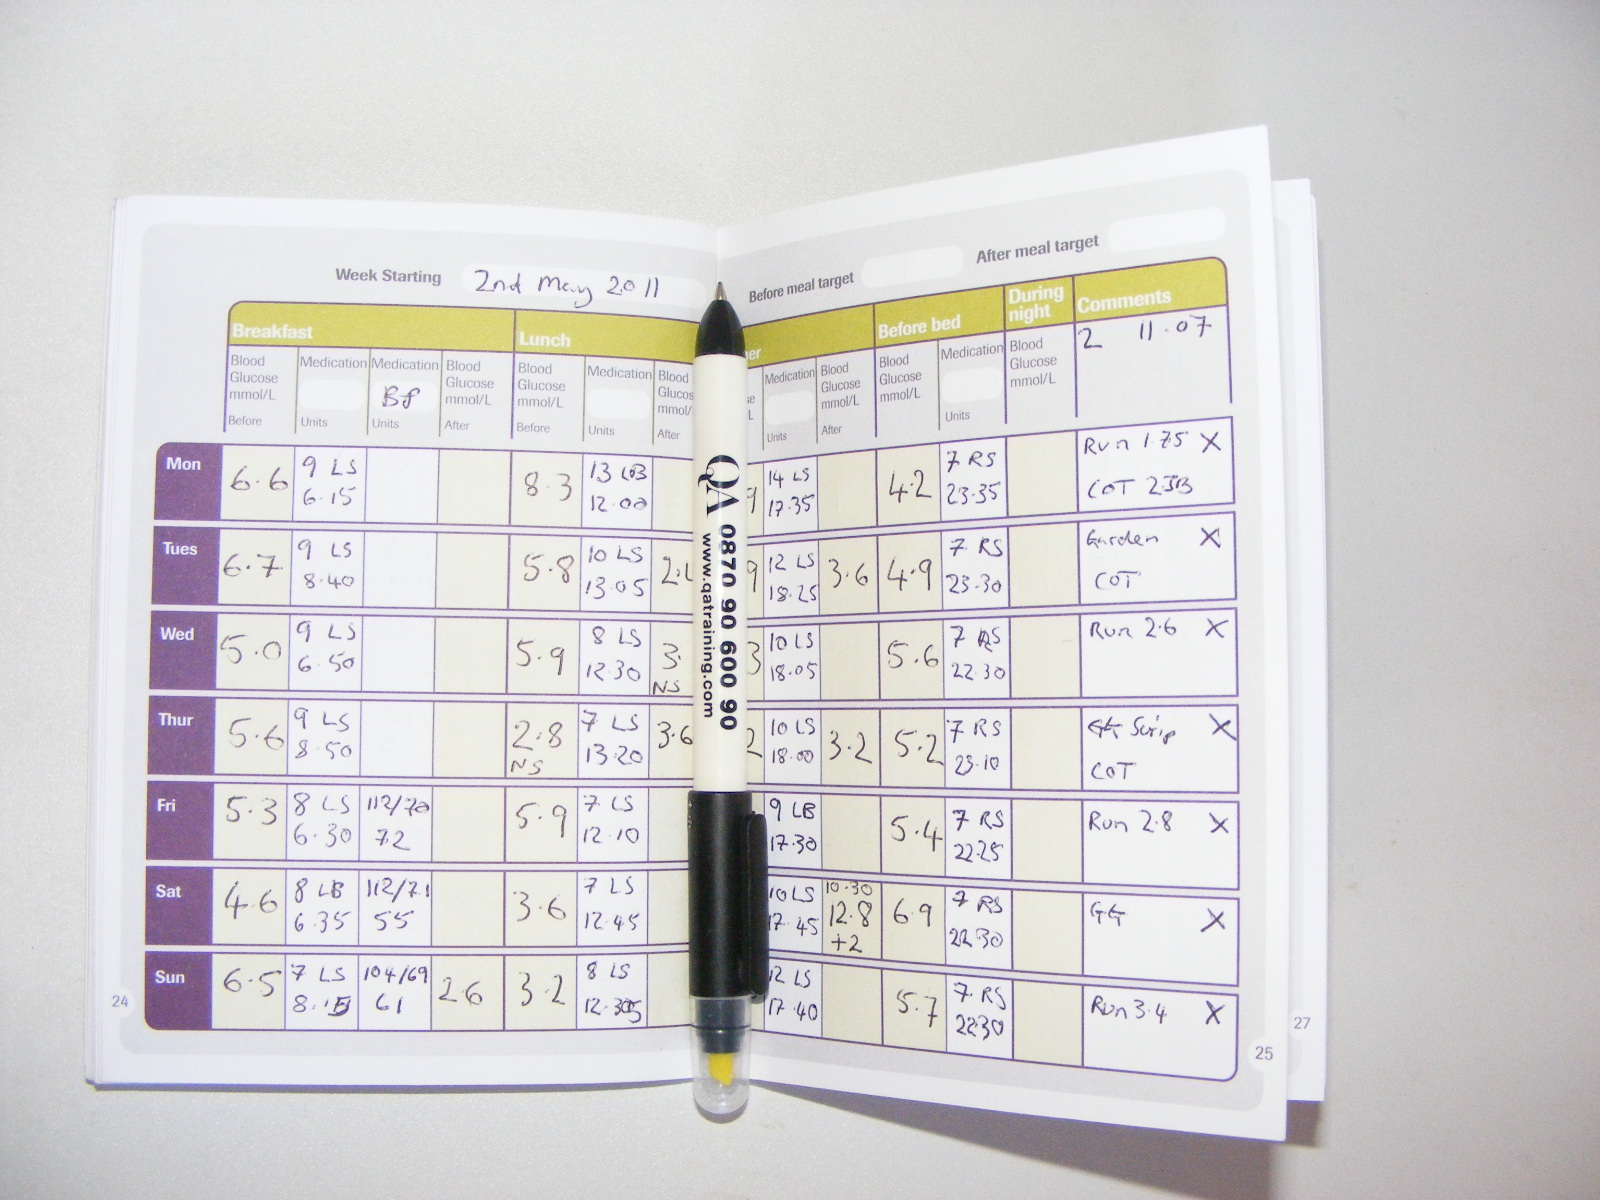 diabetes charts for recording